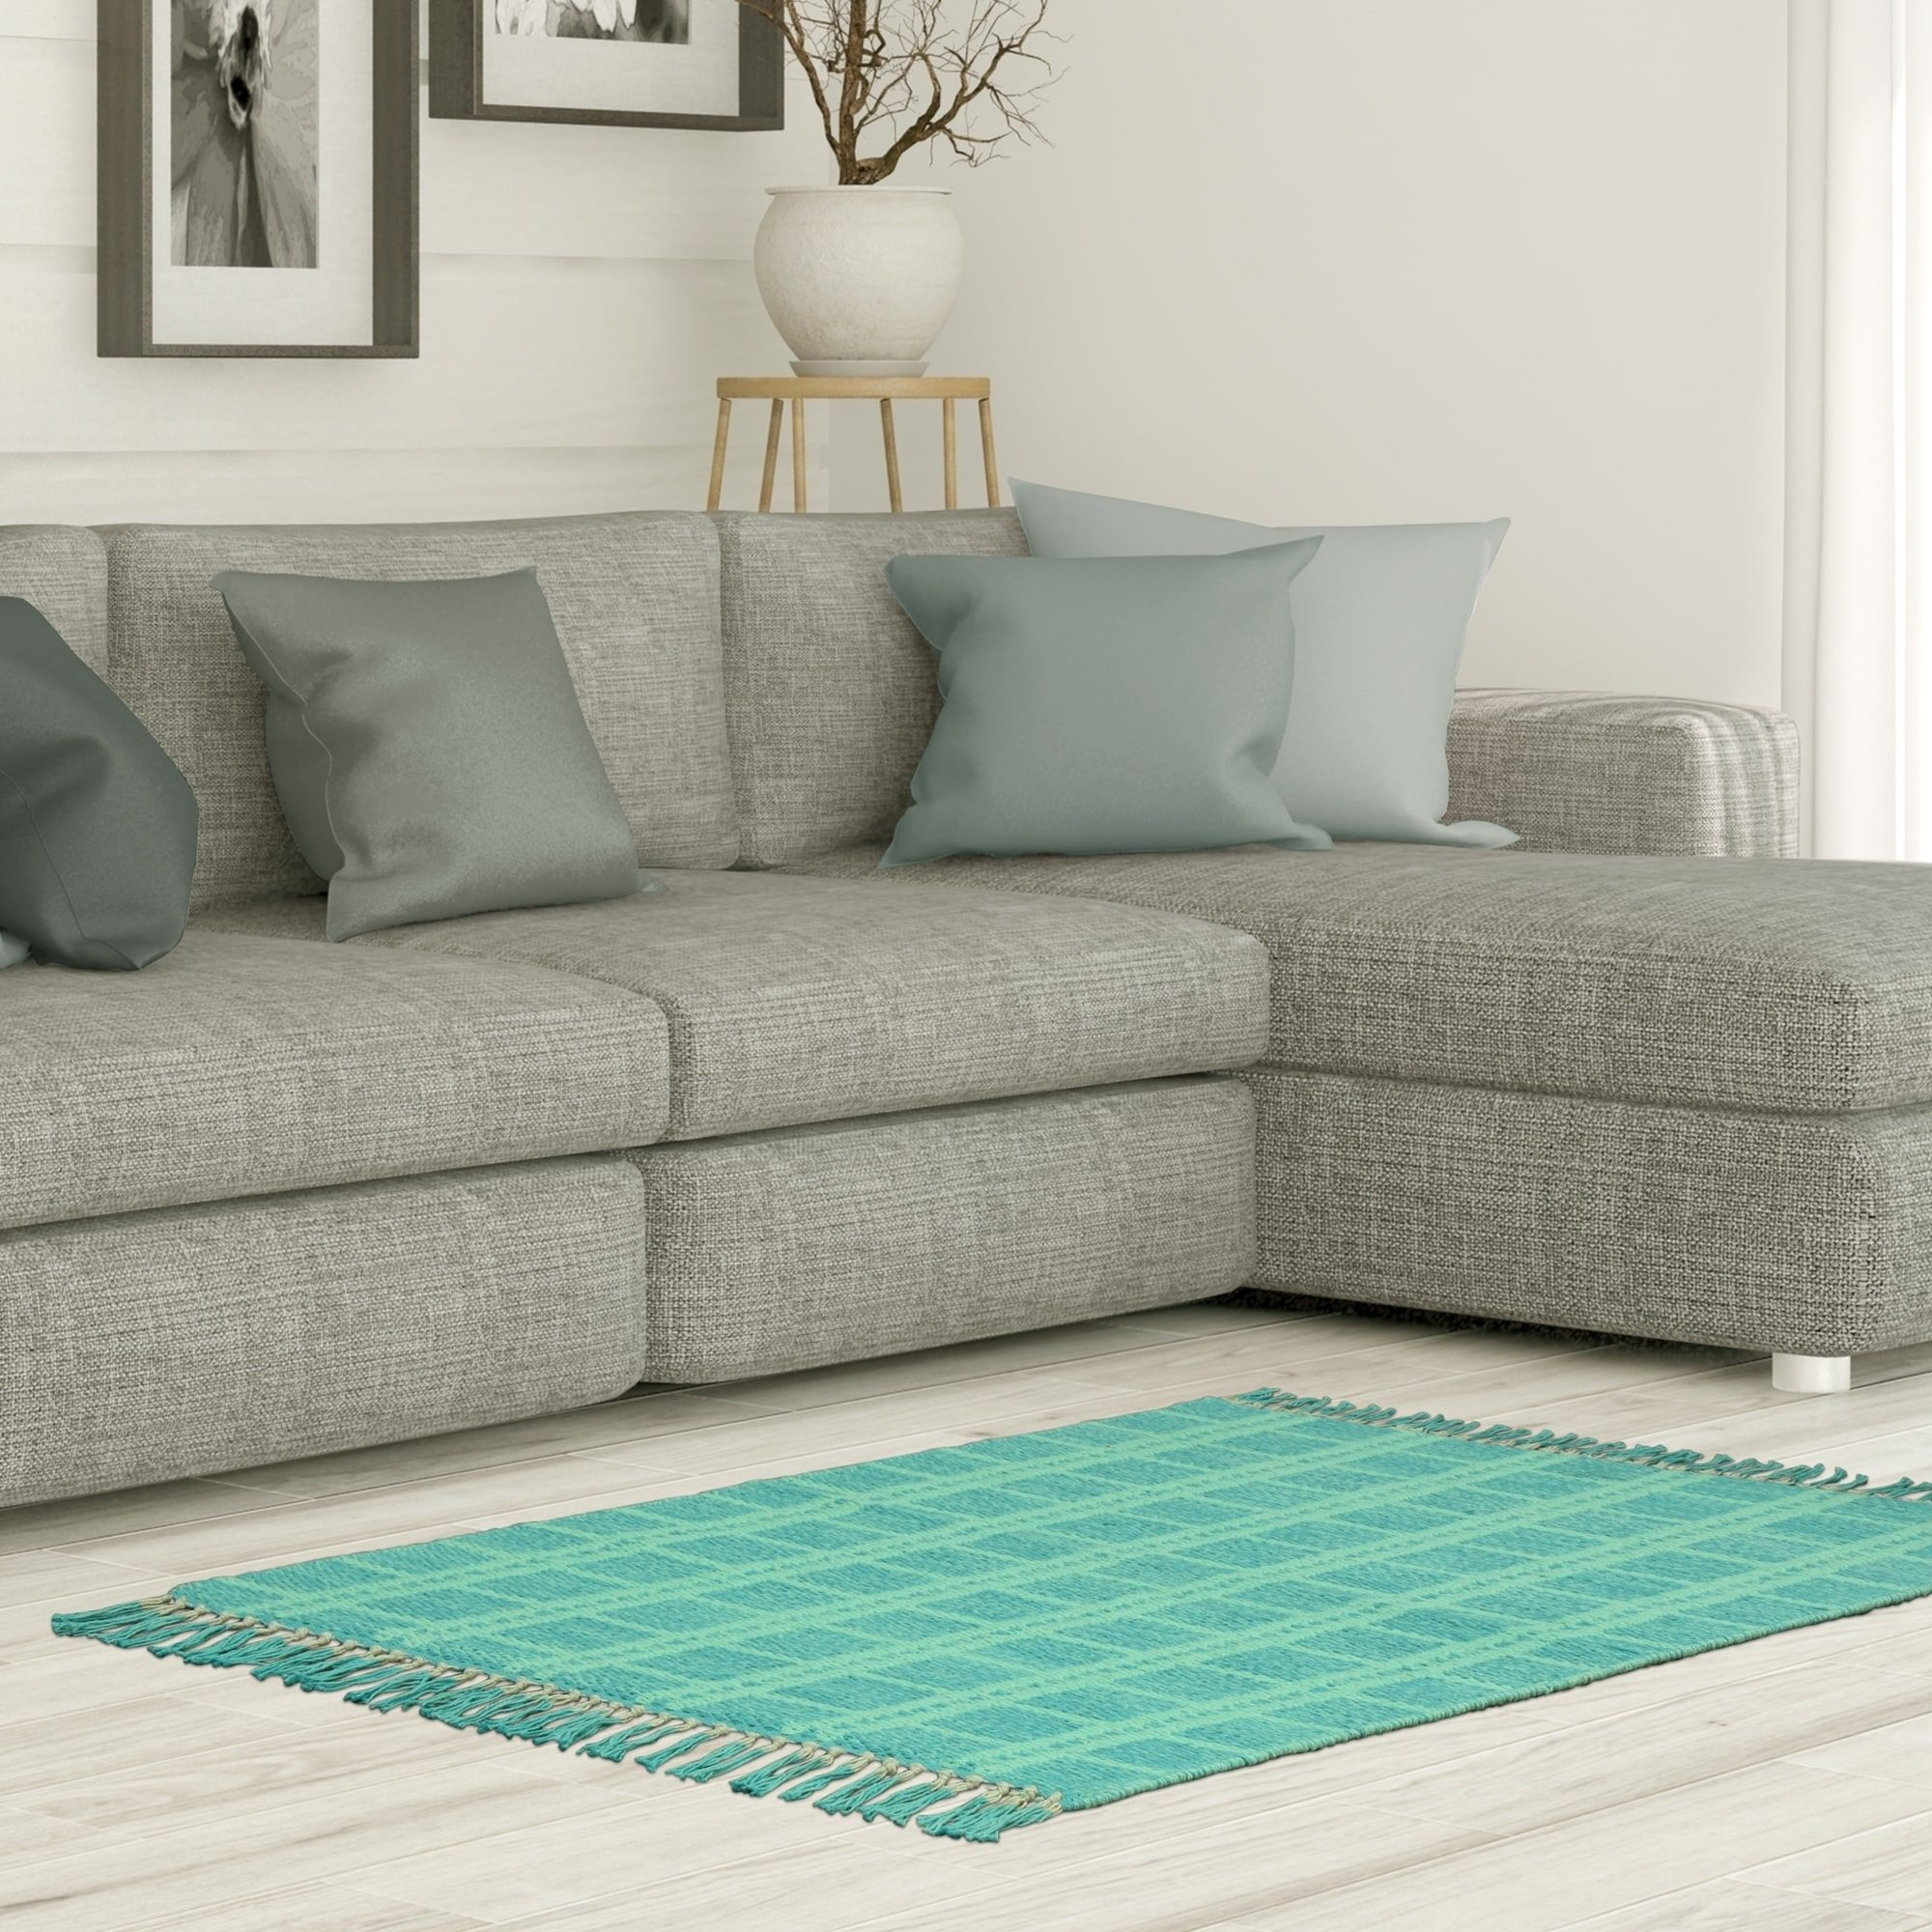 Jessica Simpson Woven Portola Accent Rug 1 8 X 2 Aqua Blue Teal Size Cotton